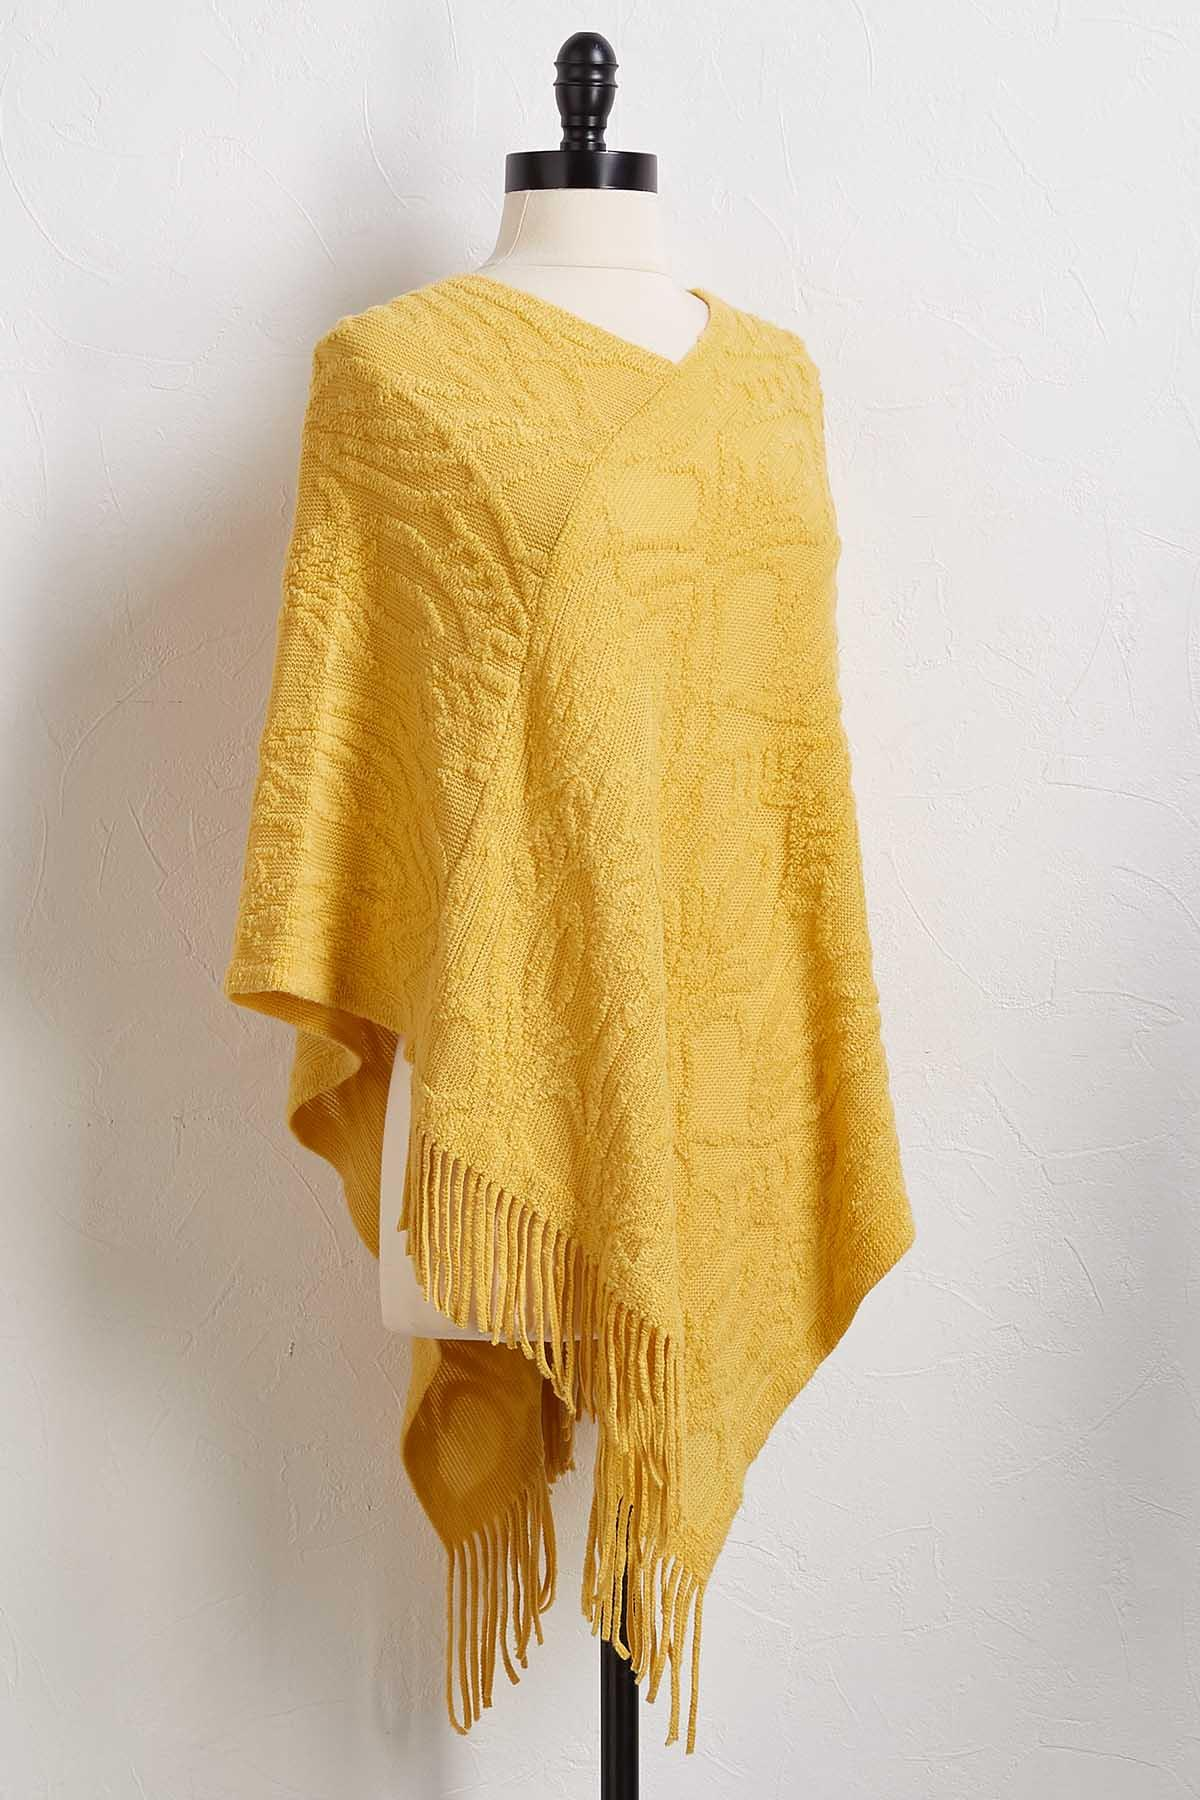 MINERAL_YELLOW